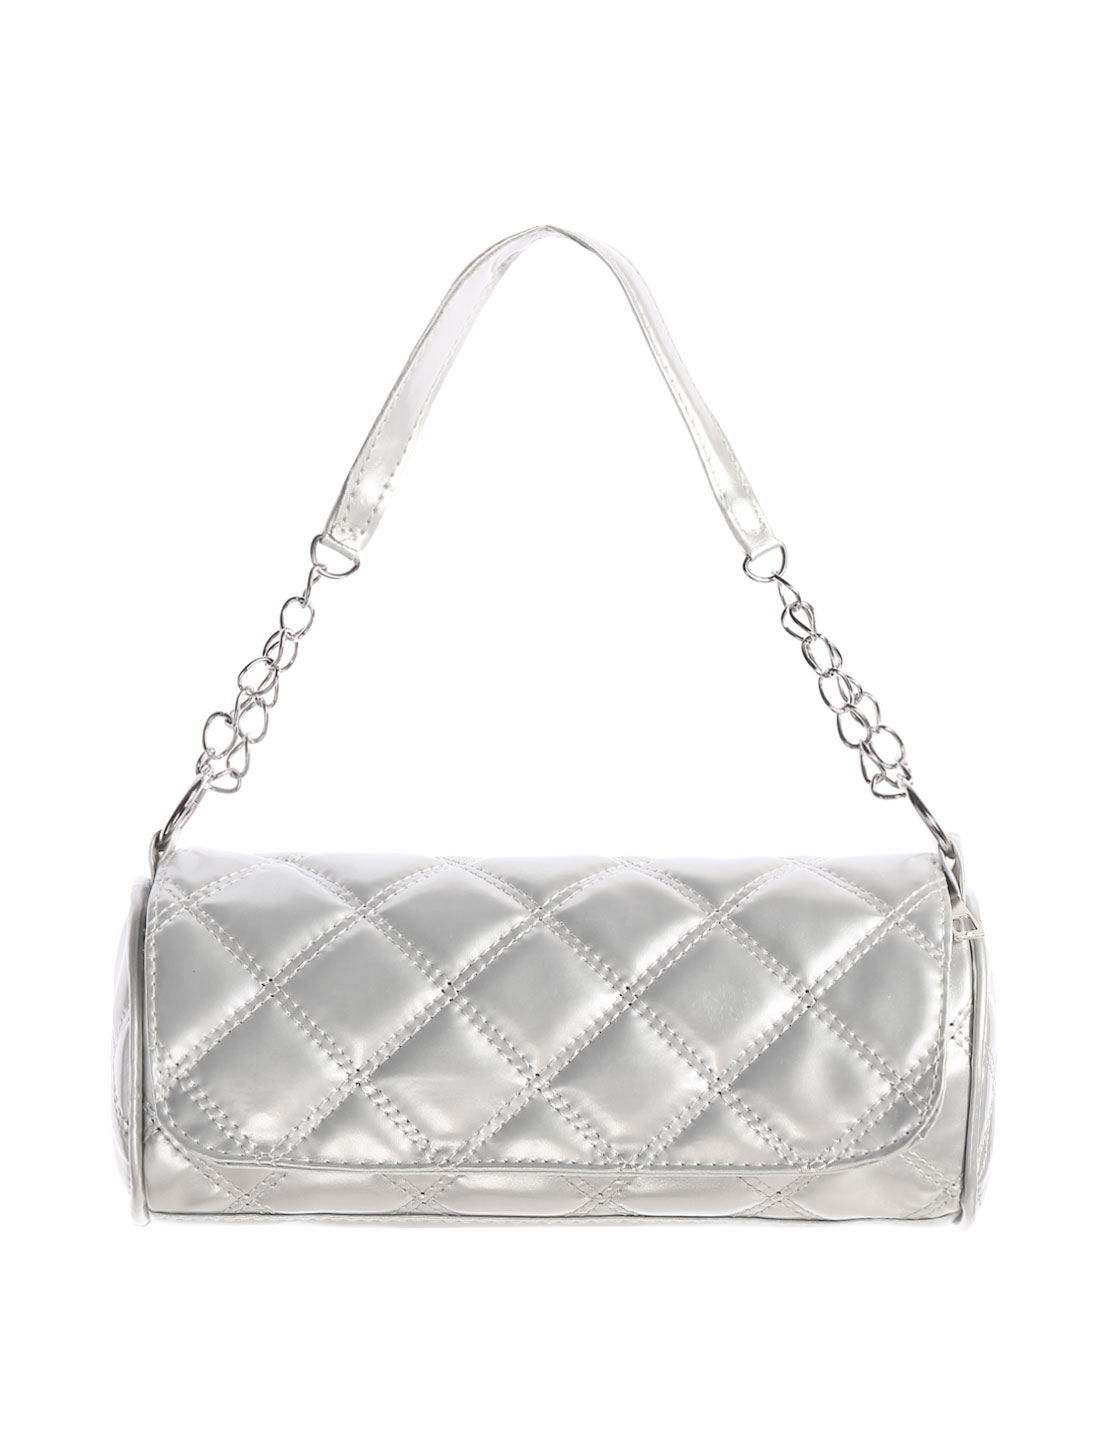 Woman Rhombus Quilted PU Leather Fashion Shoulder Bag Silver Tone